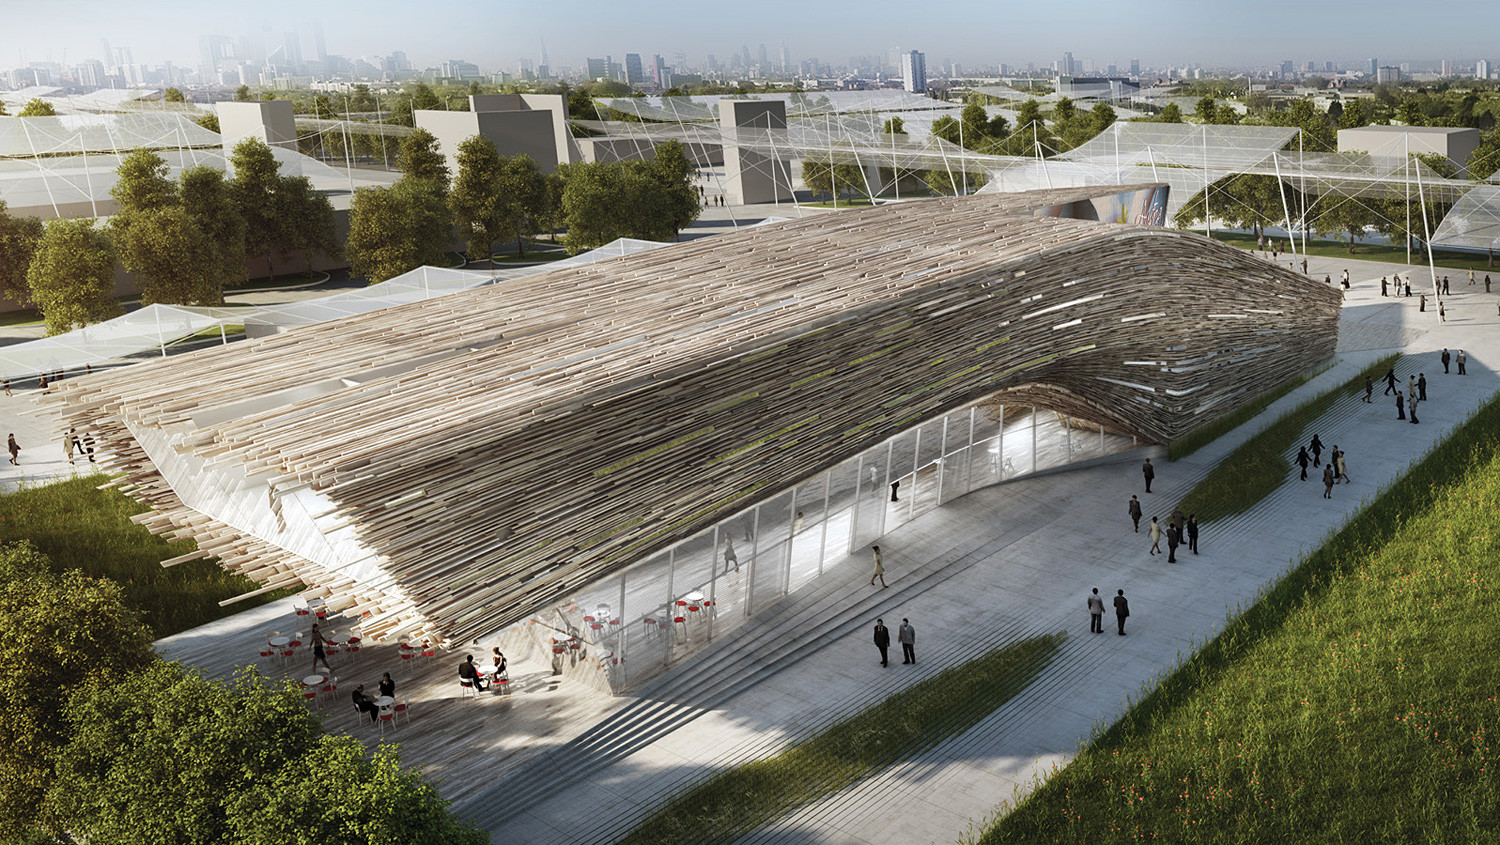 Competition Entry: Austrian Pavilion (Milan Expo 2015) / Bence Pap | Mario Gasser, © Bence Pap | Mario Gasser